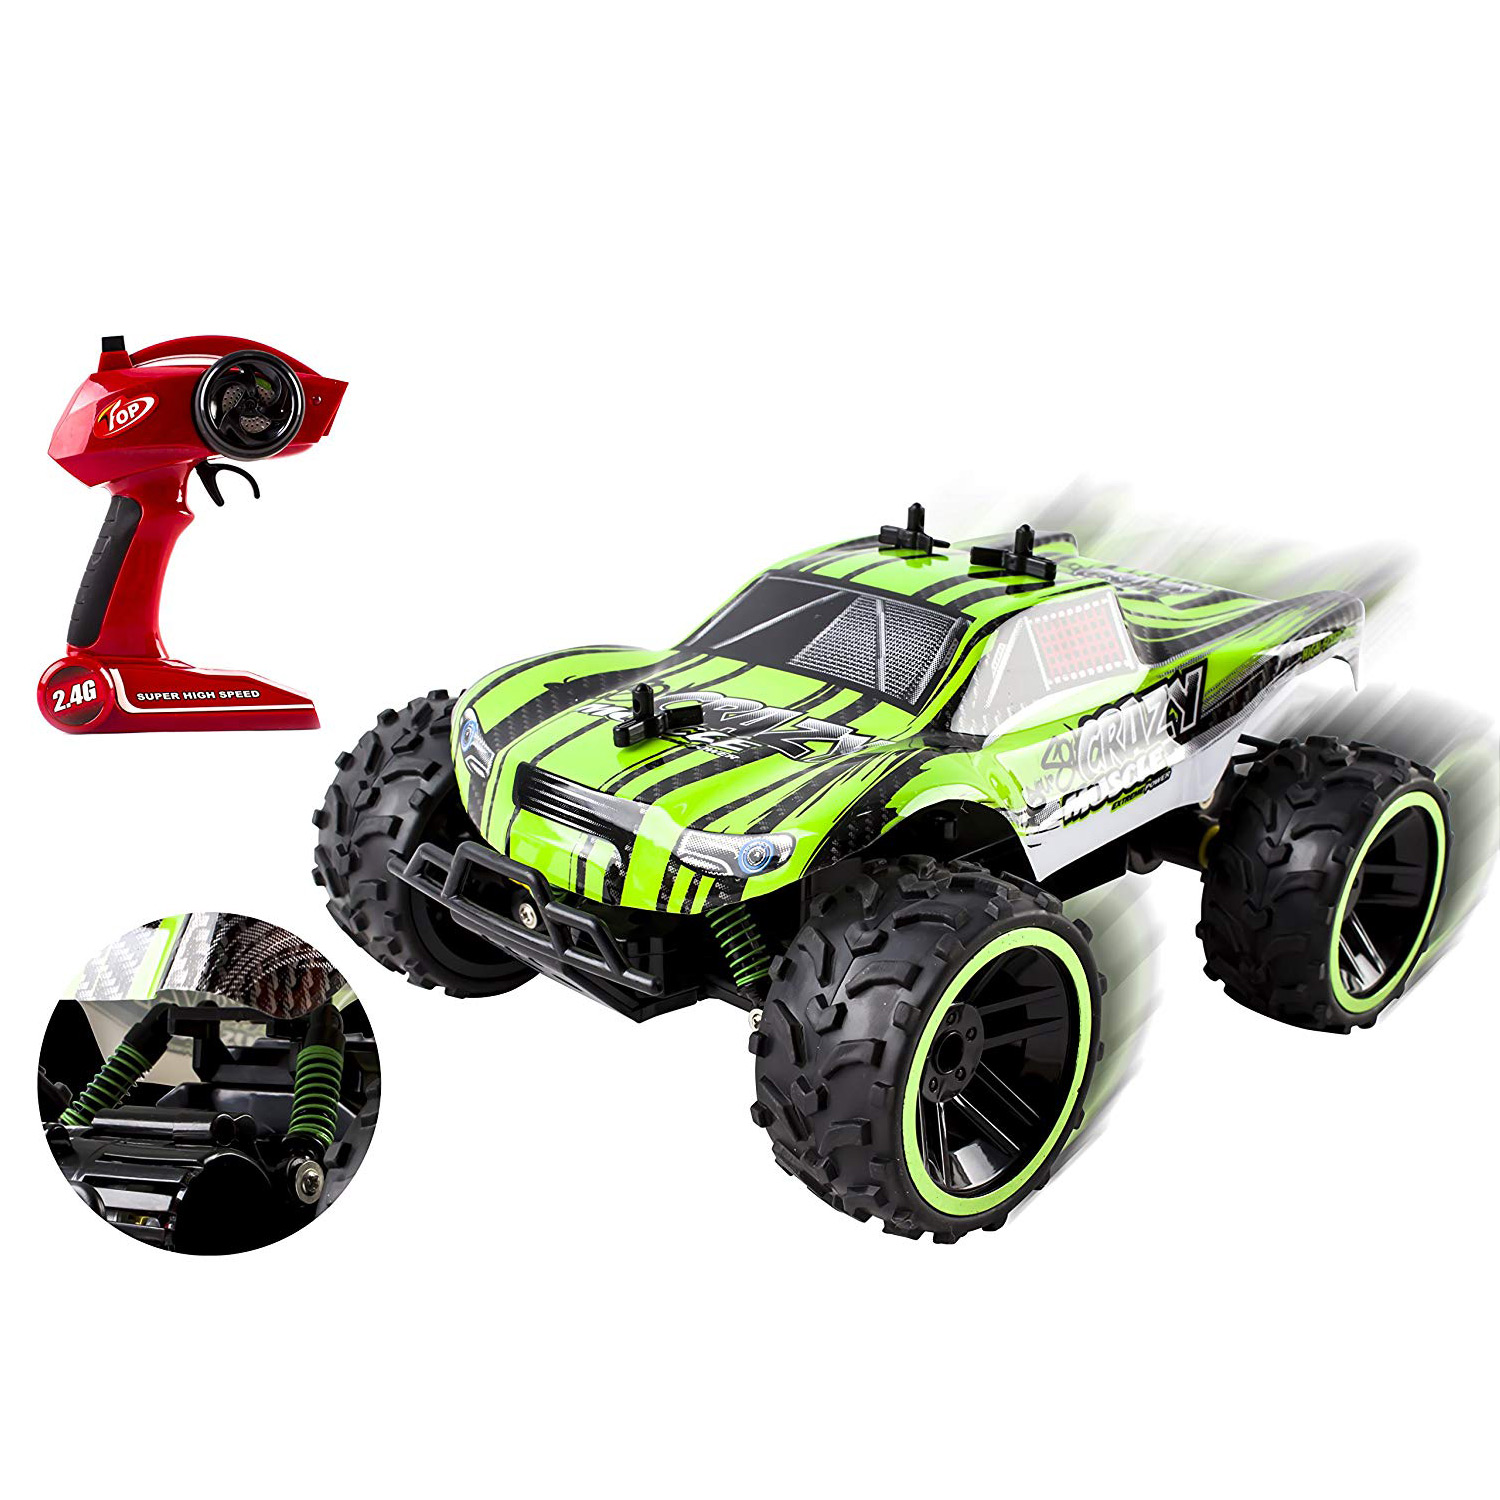 Speed Muscle RC Buggy 24Ghz 116 Scale Remote Control Truggy Ready to Run With Working Suspension And Spring Shock Absorbers for Indoor Outdoor And Off-Road Use Strong Build Toy Green